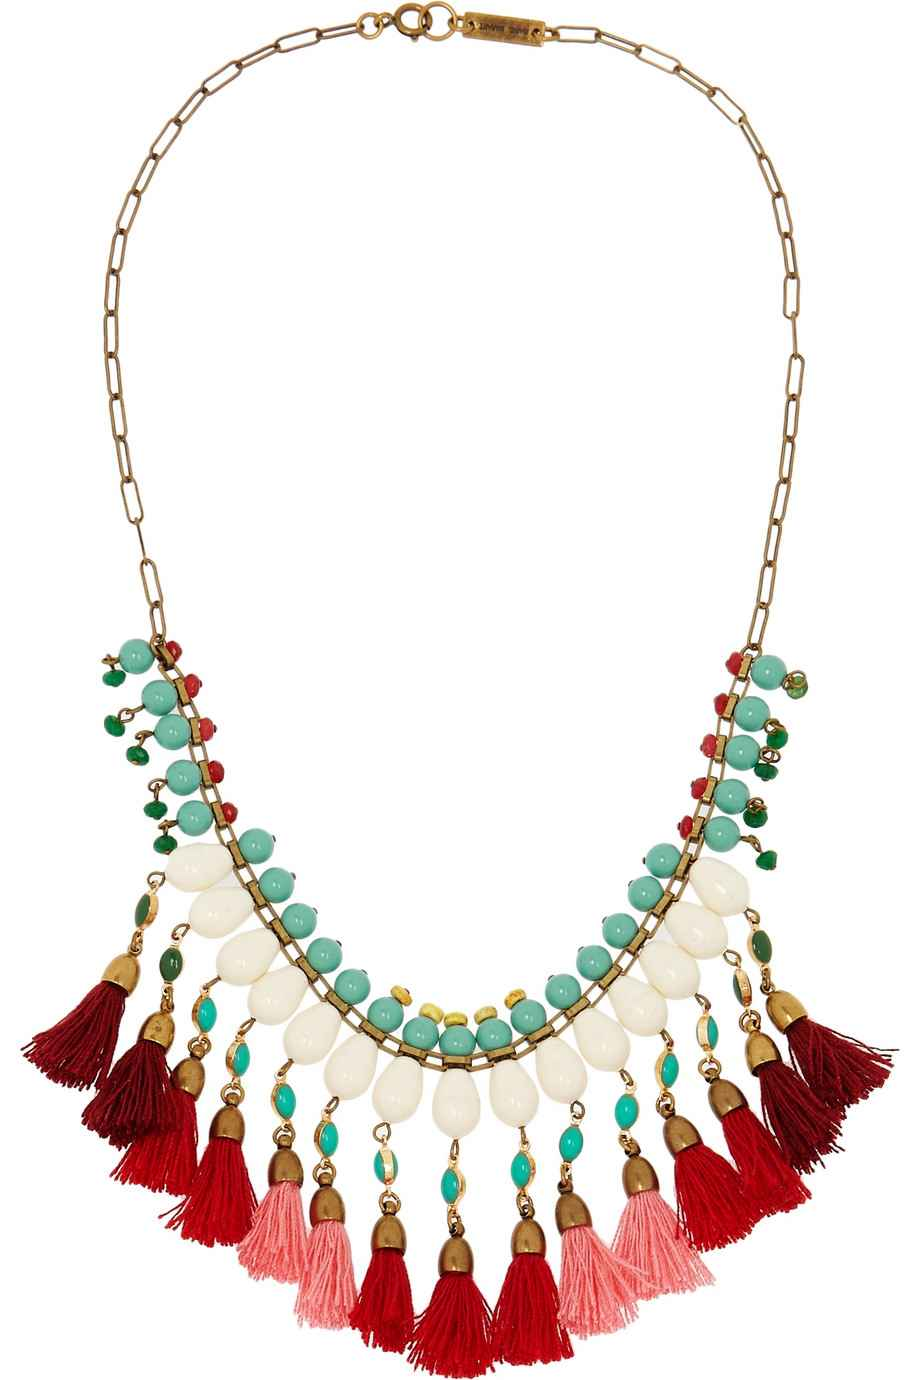 Isabel Marant - Collier(290 €)